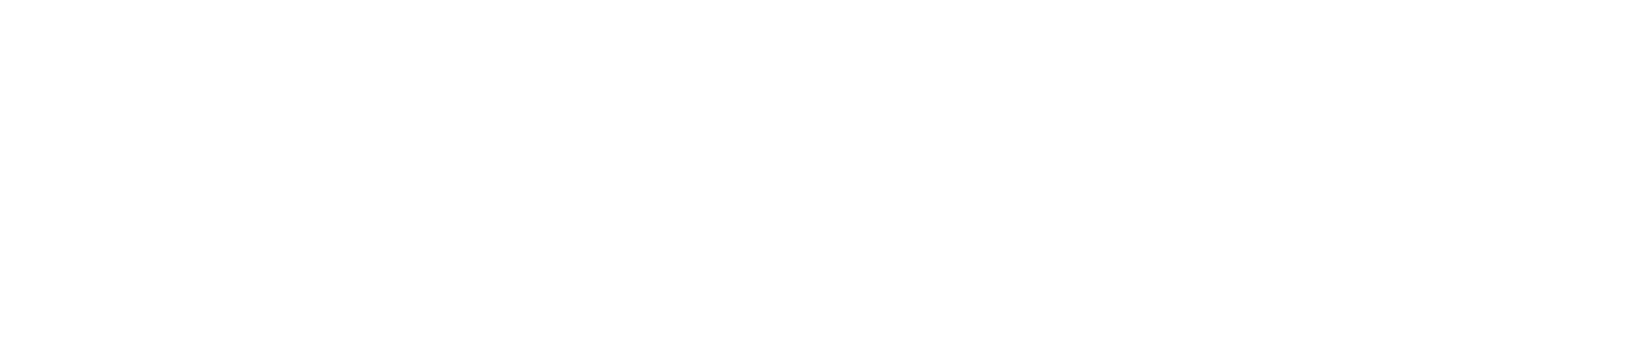 Midwest-Electric_logo_all_white_2.png